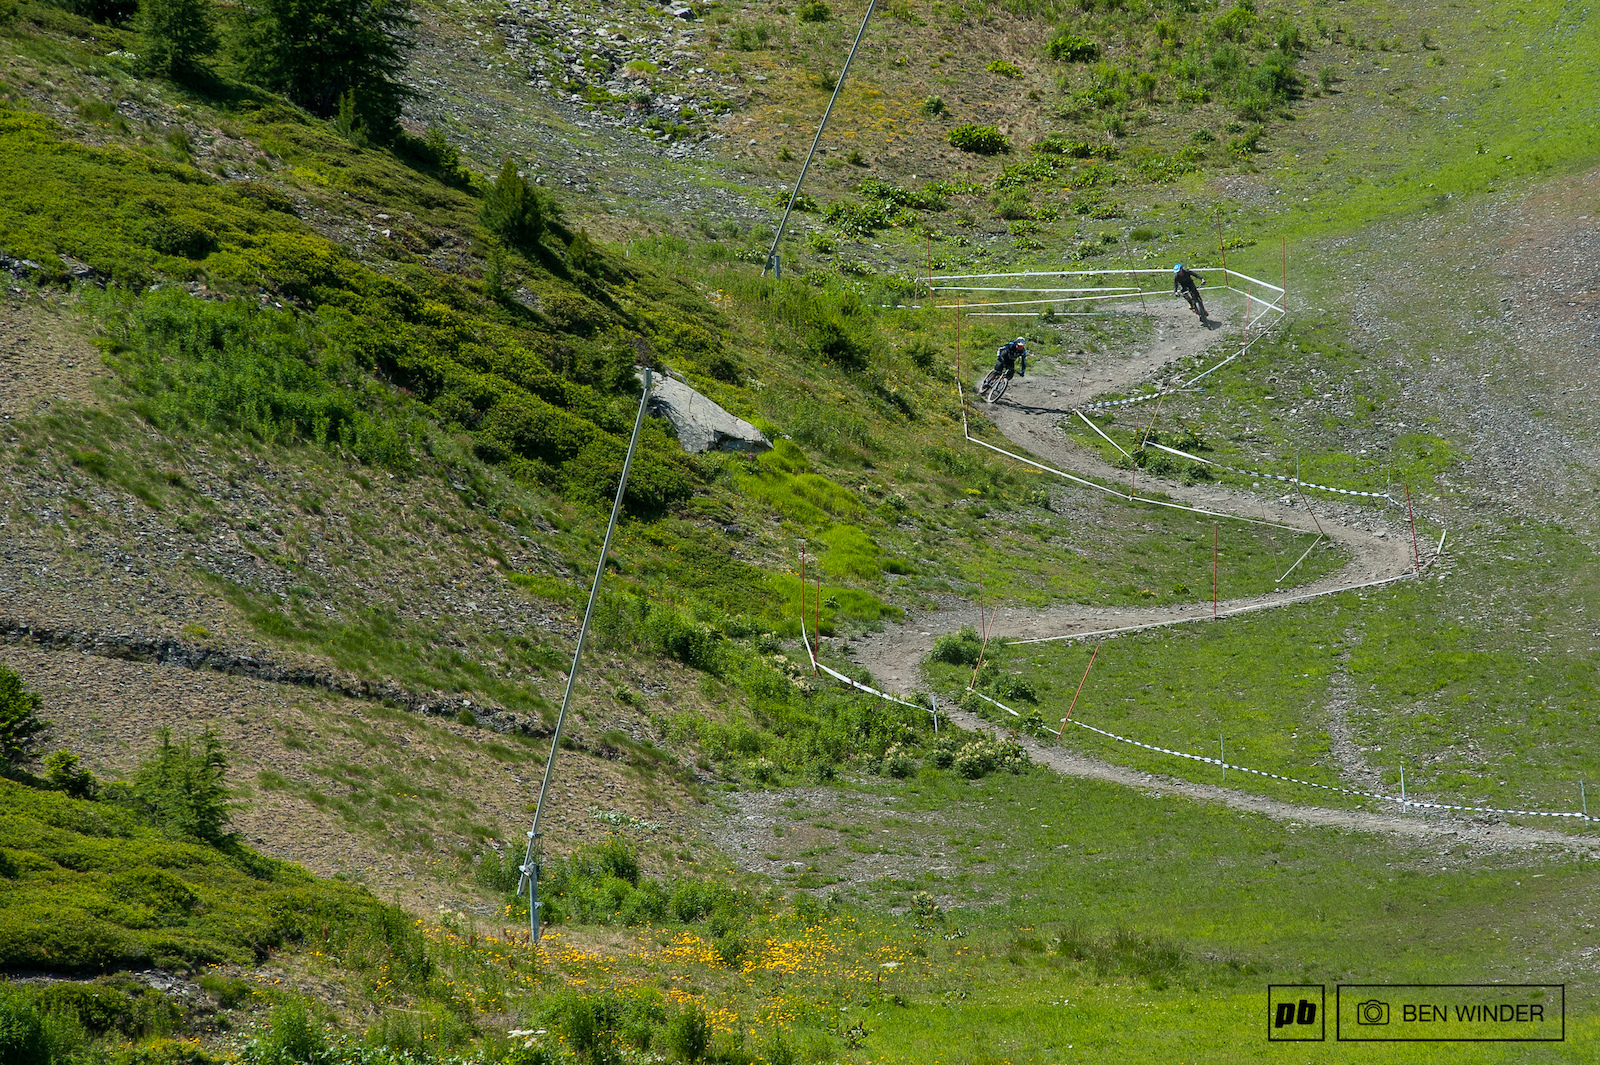 The stages snake down through ski pistes.